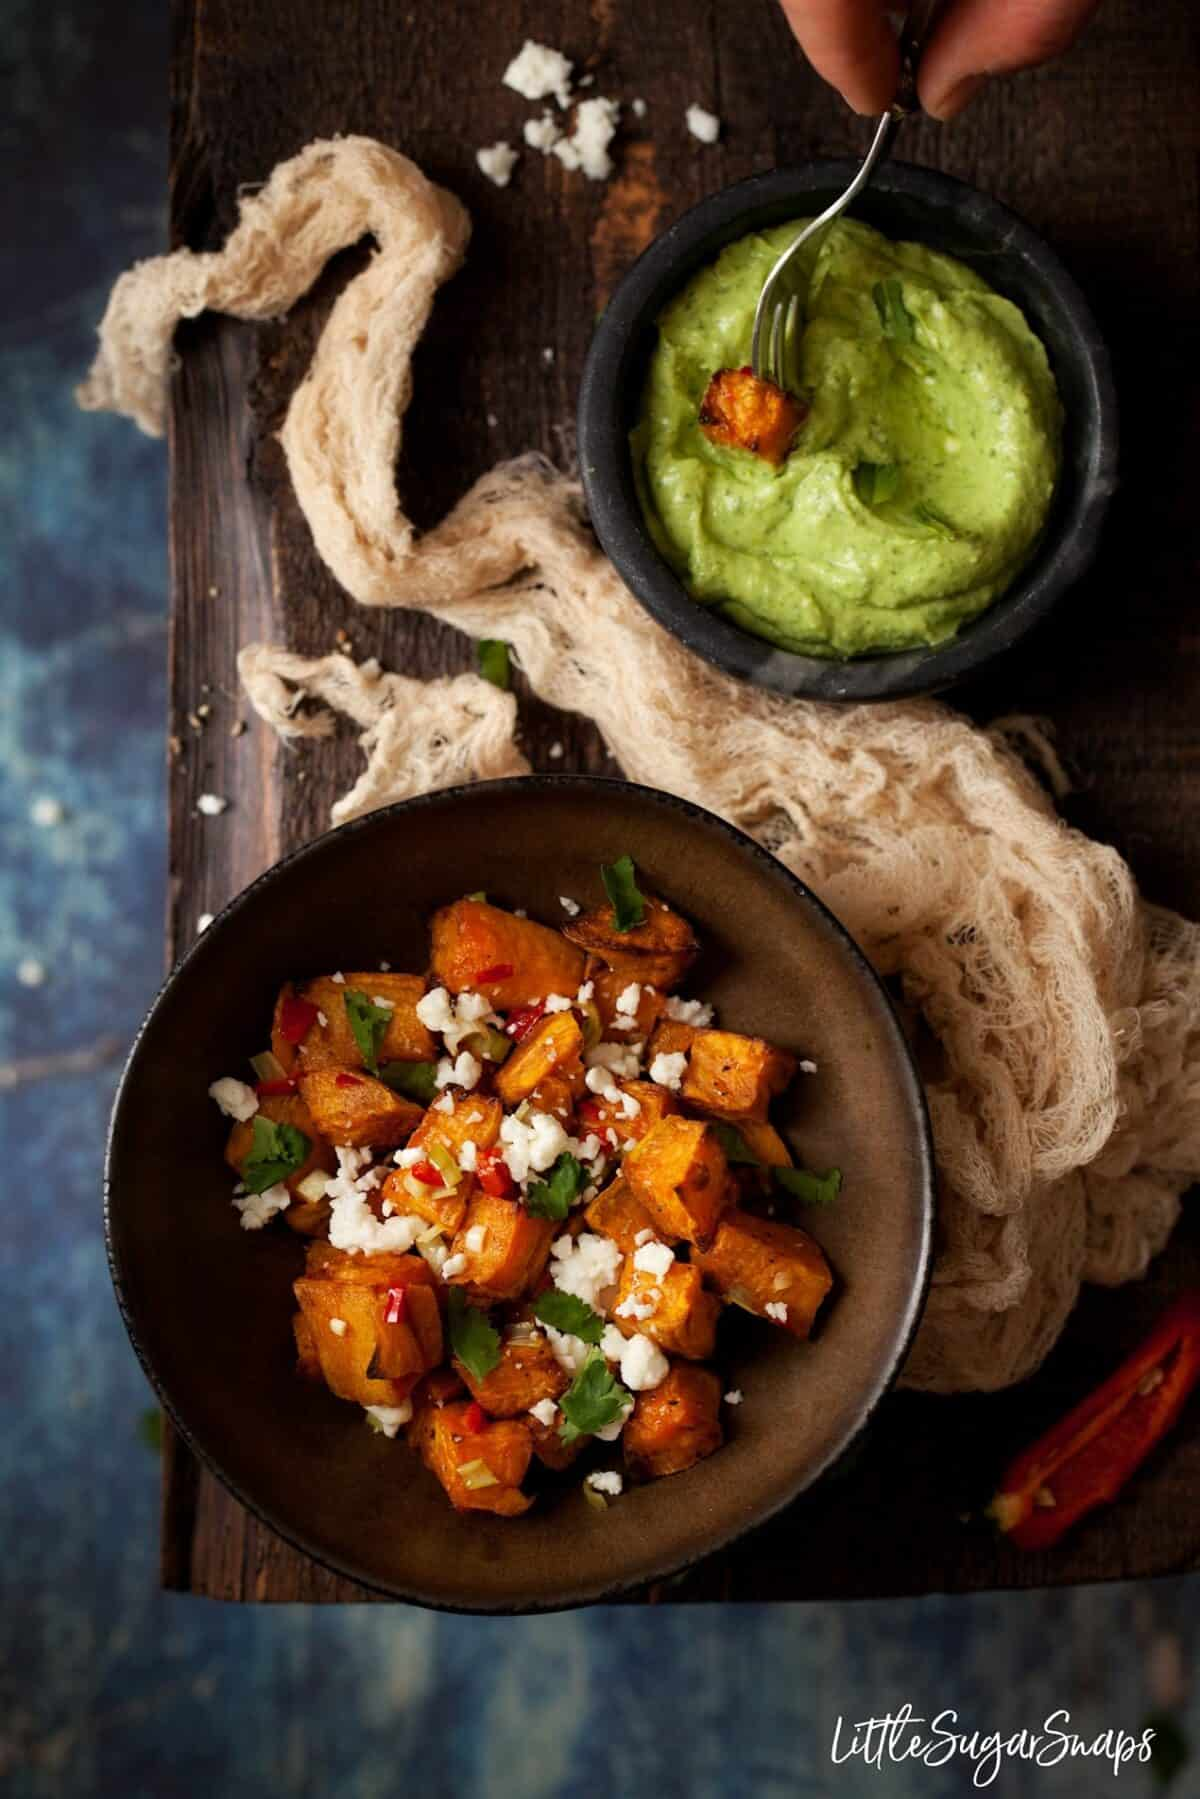 Chilli Feta sweet potatoes in a bowl with a cube being dipped in avocado and feta dip